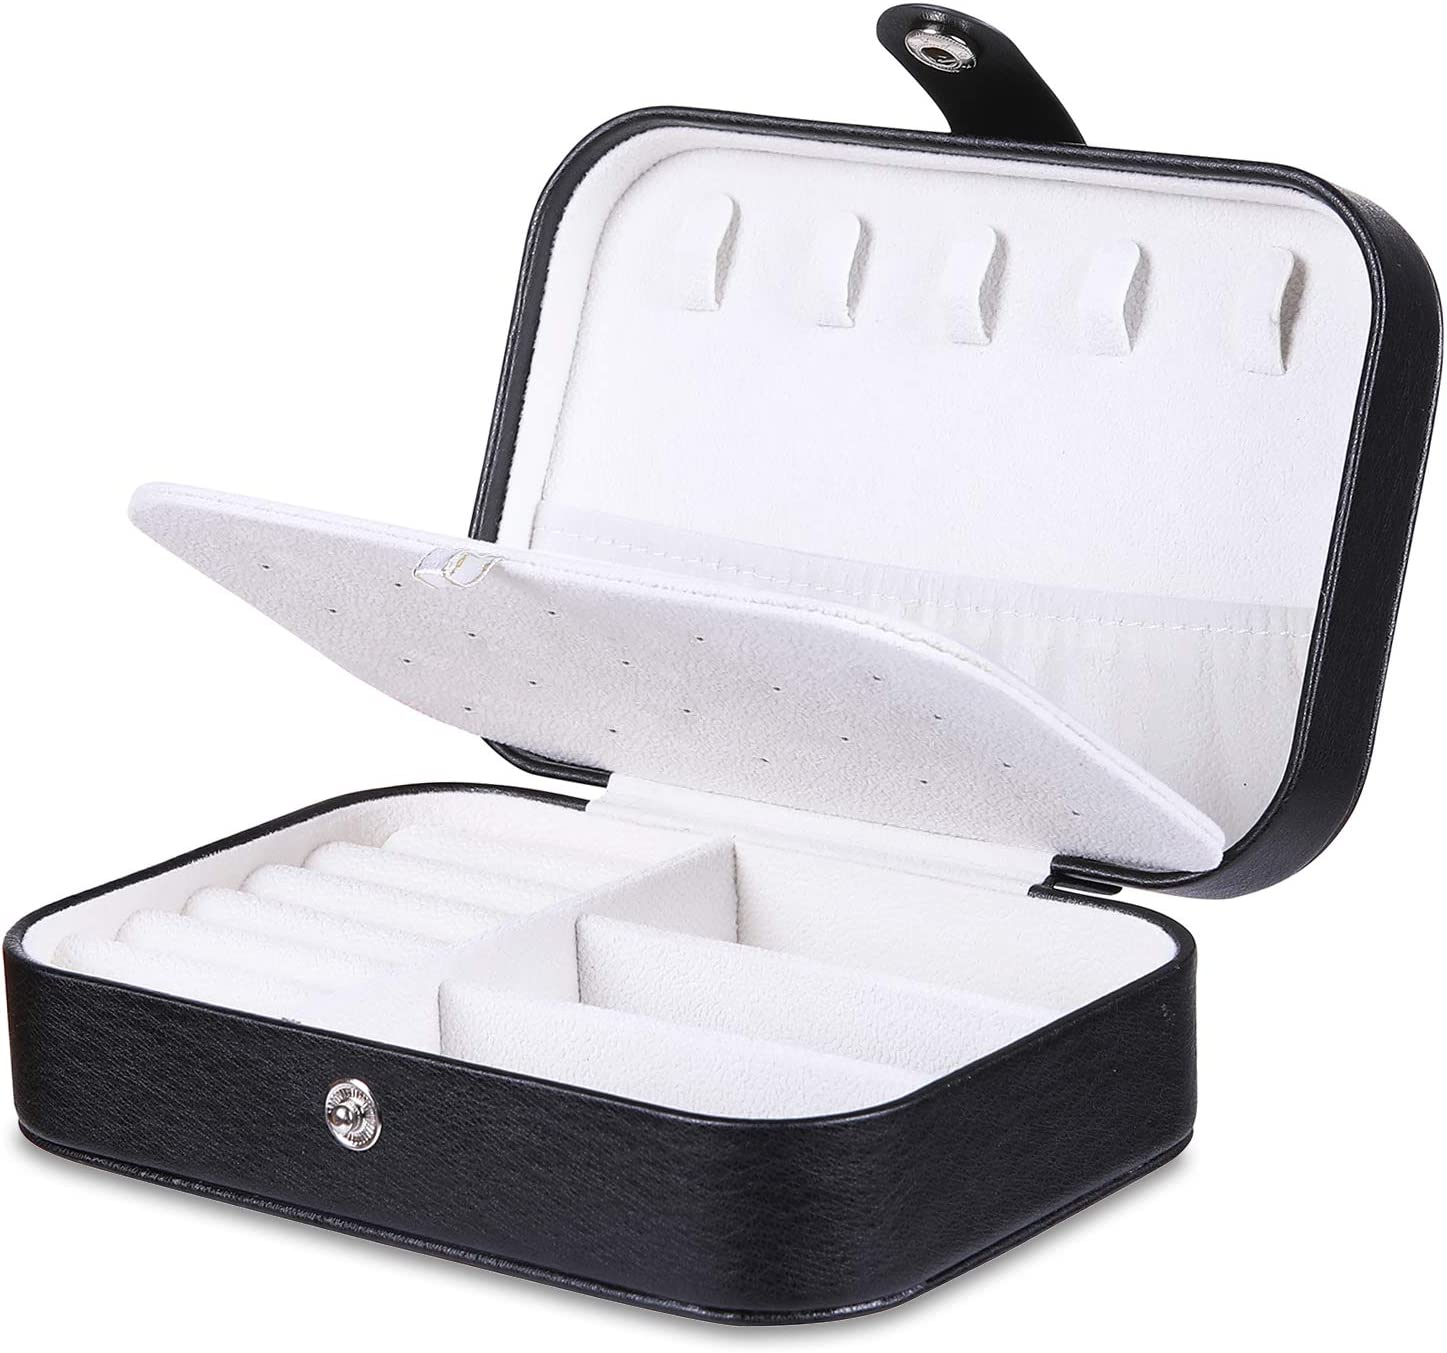 Black misaya Travel Jewelry Box Middle Size Storage Case for Necklace Earrings Rings Portable Jewelry Organizer for Women